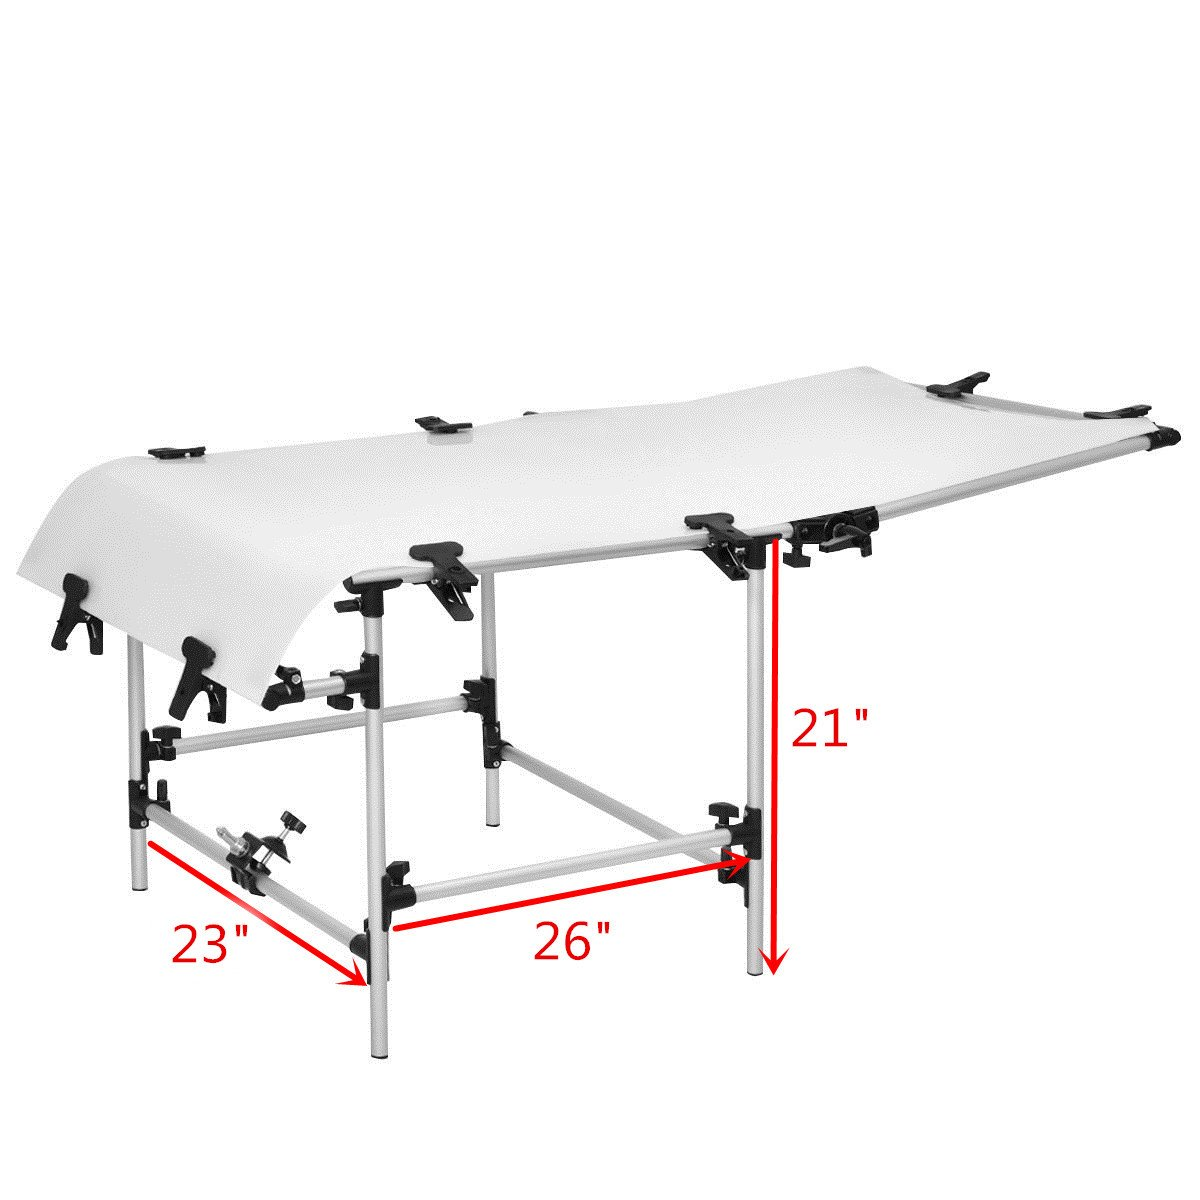 Safstar Photo Shooting Table PVC Board Non-Reflective Photo Studio Bench (23''x51'') by Safstar (Image #5)